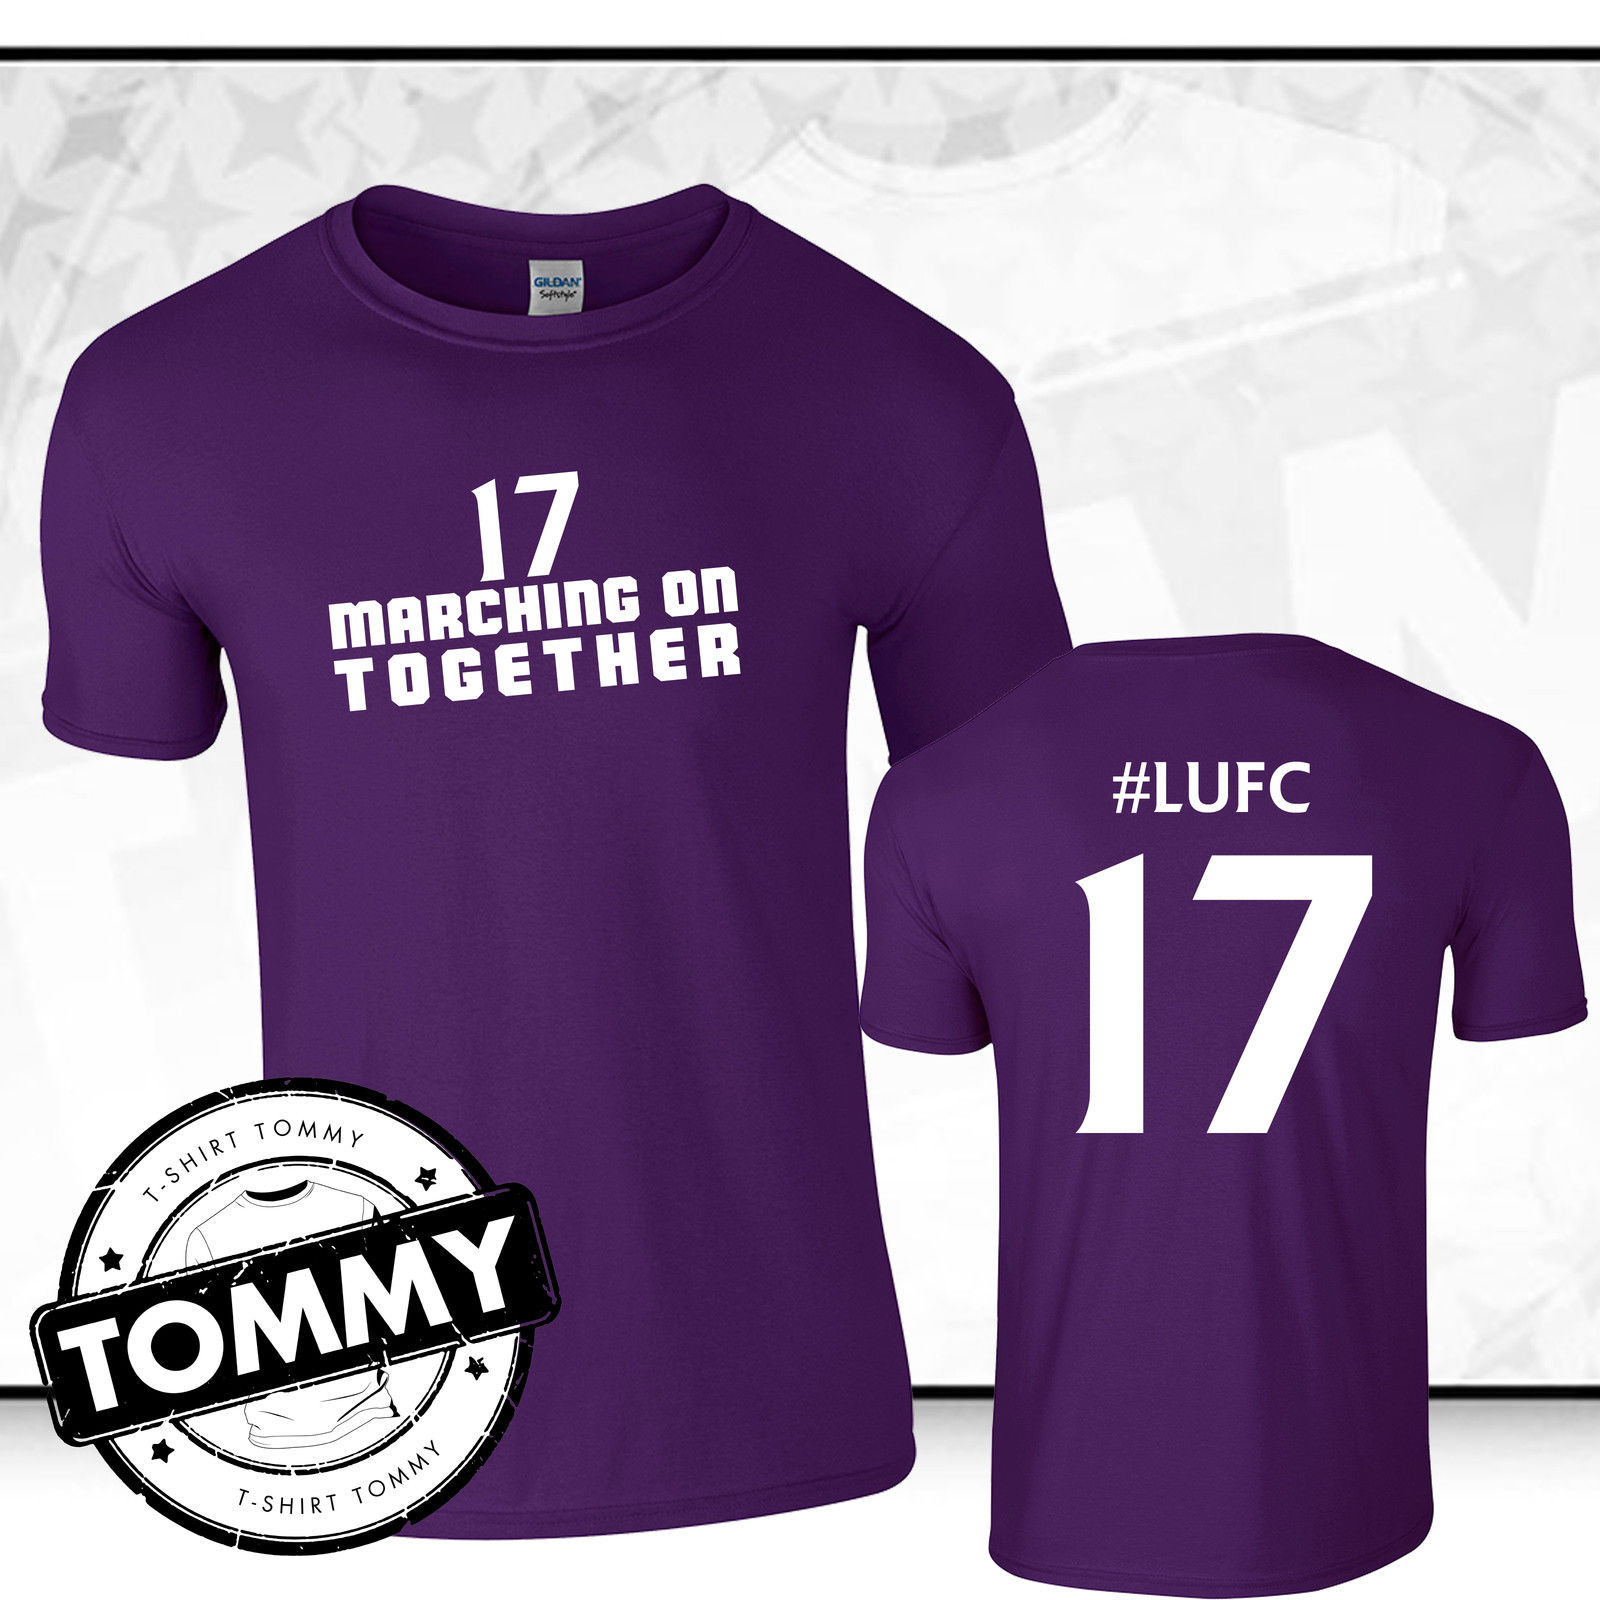 Leeds united t shirt purple protest number 17 t shirt for Printed t shirts leeds